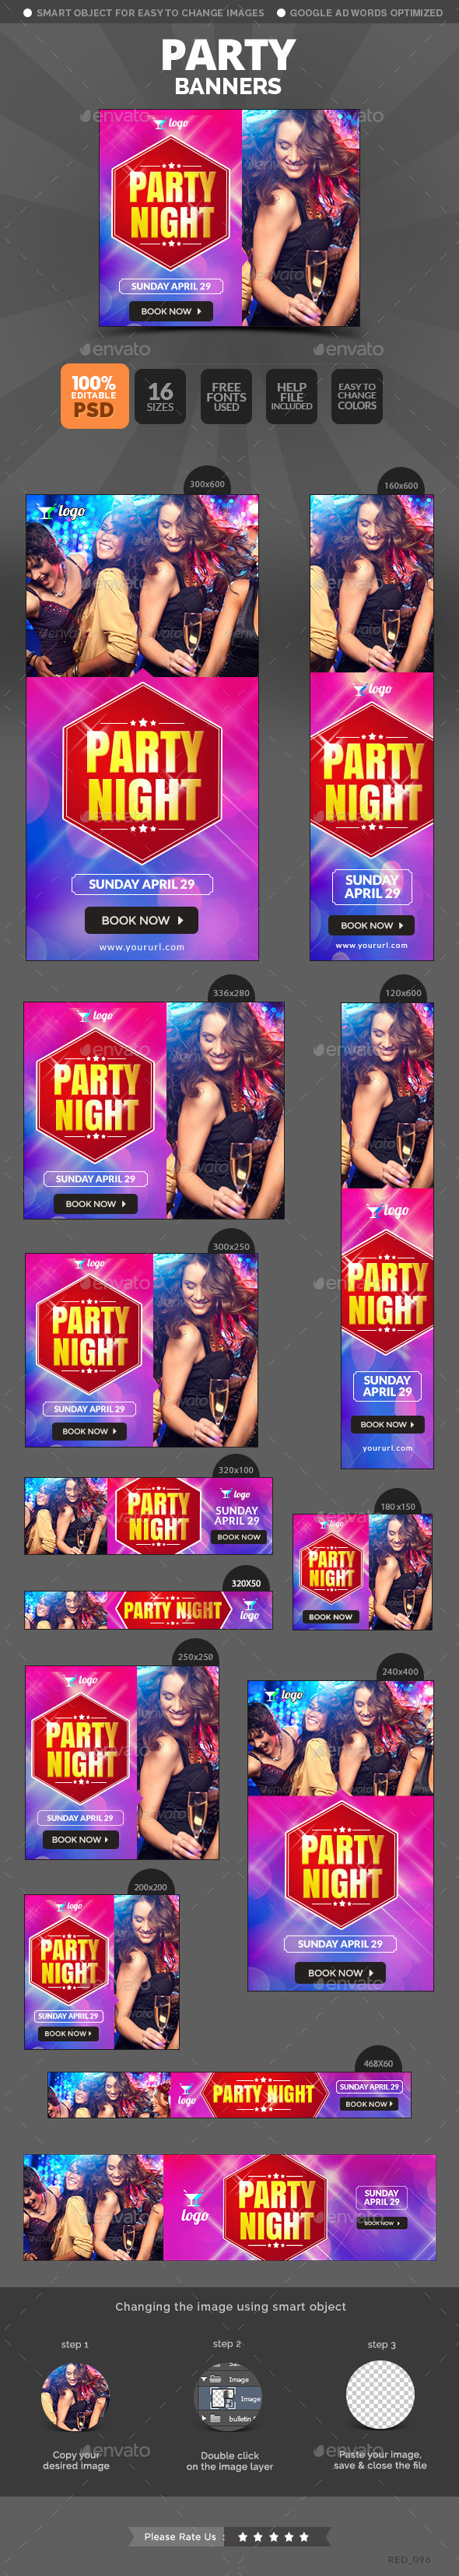 Party Web Banners Template